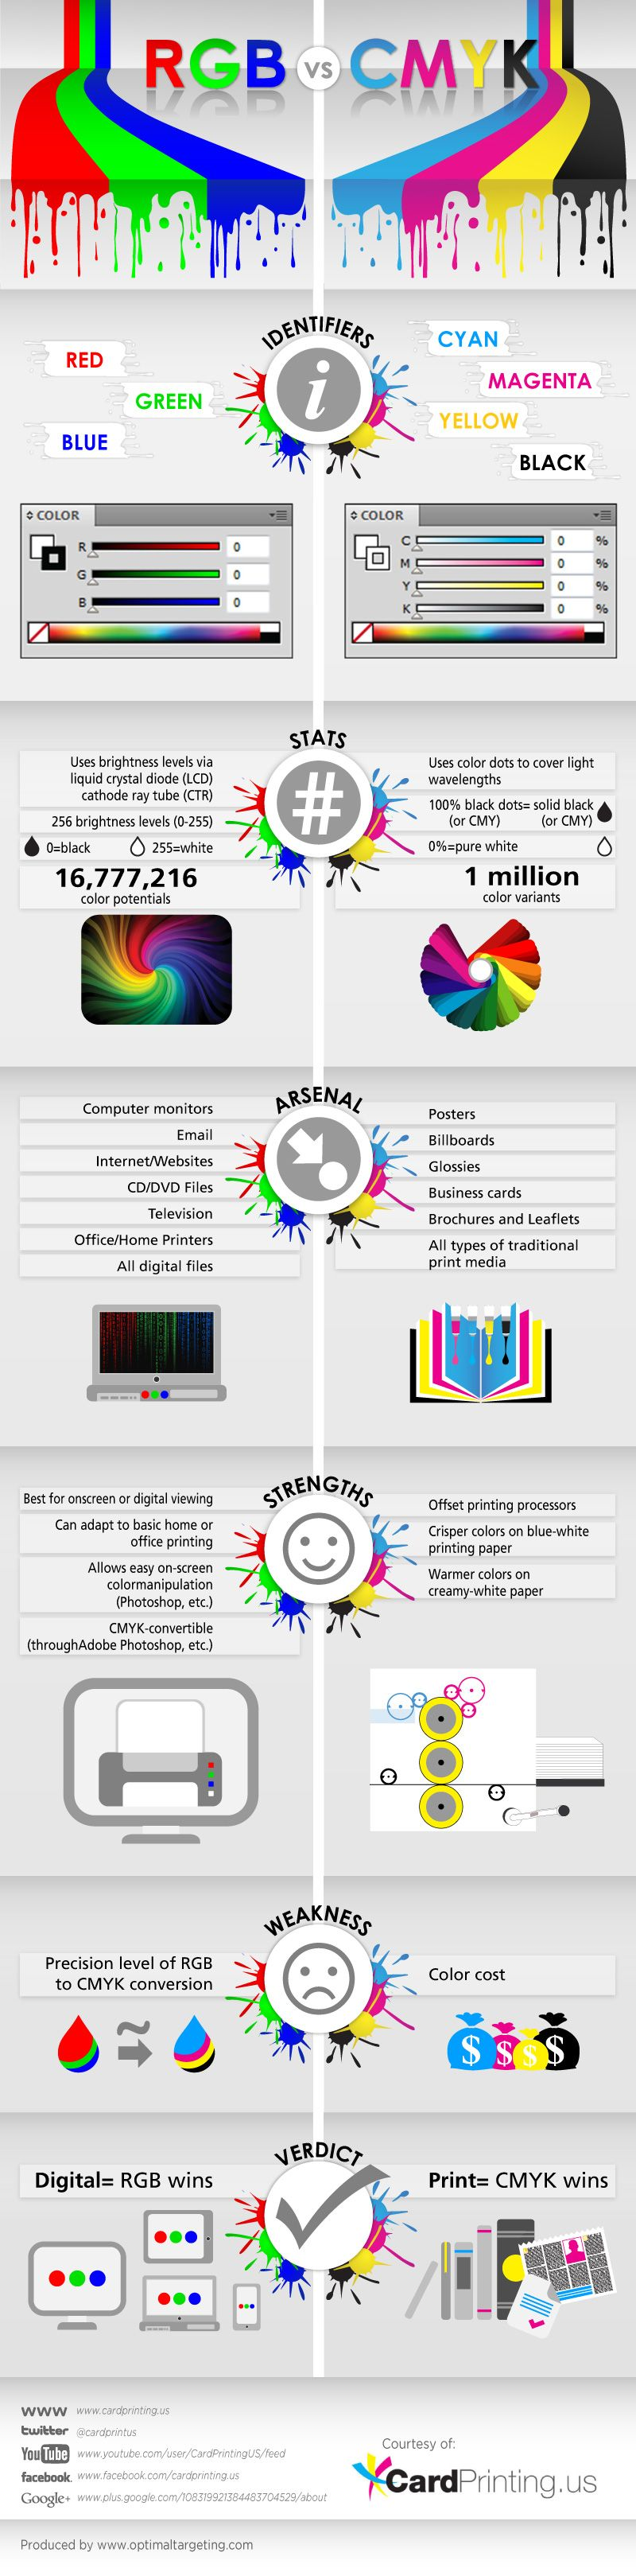 Rgb Vs Cmyk Infographic Downgraf Graphic Design Tips Graphic Design Web Design